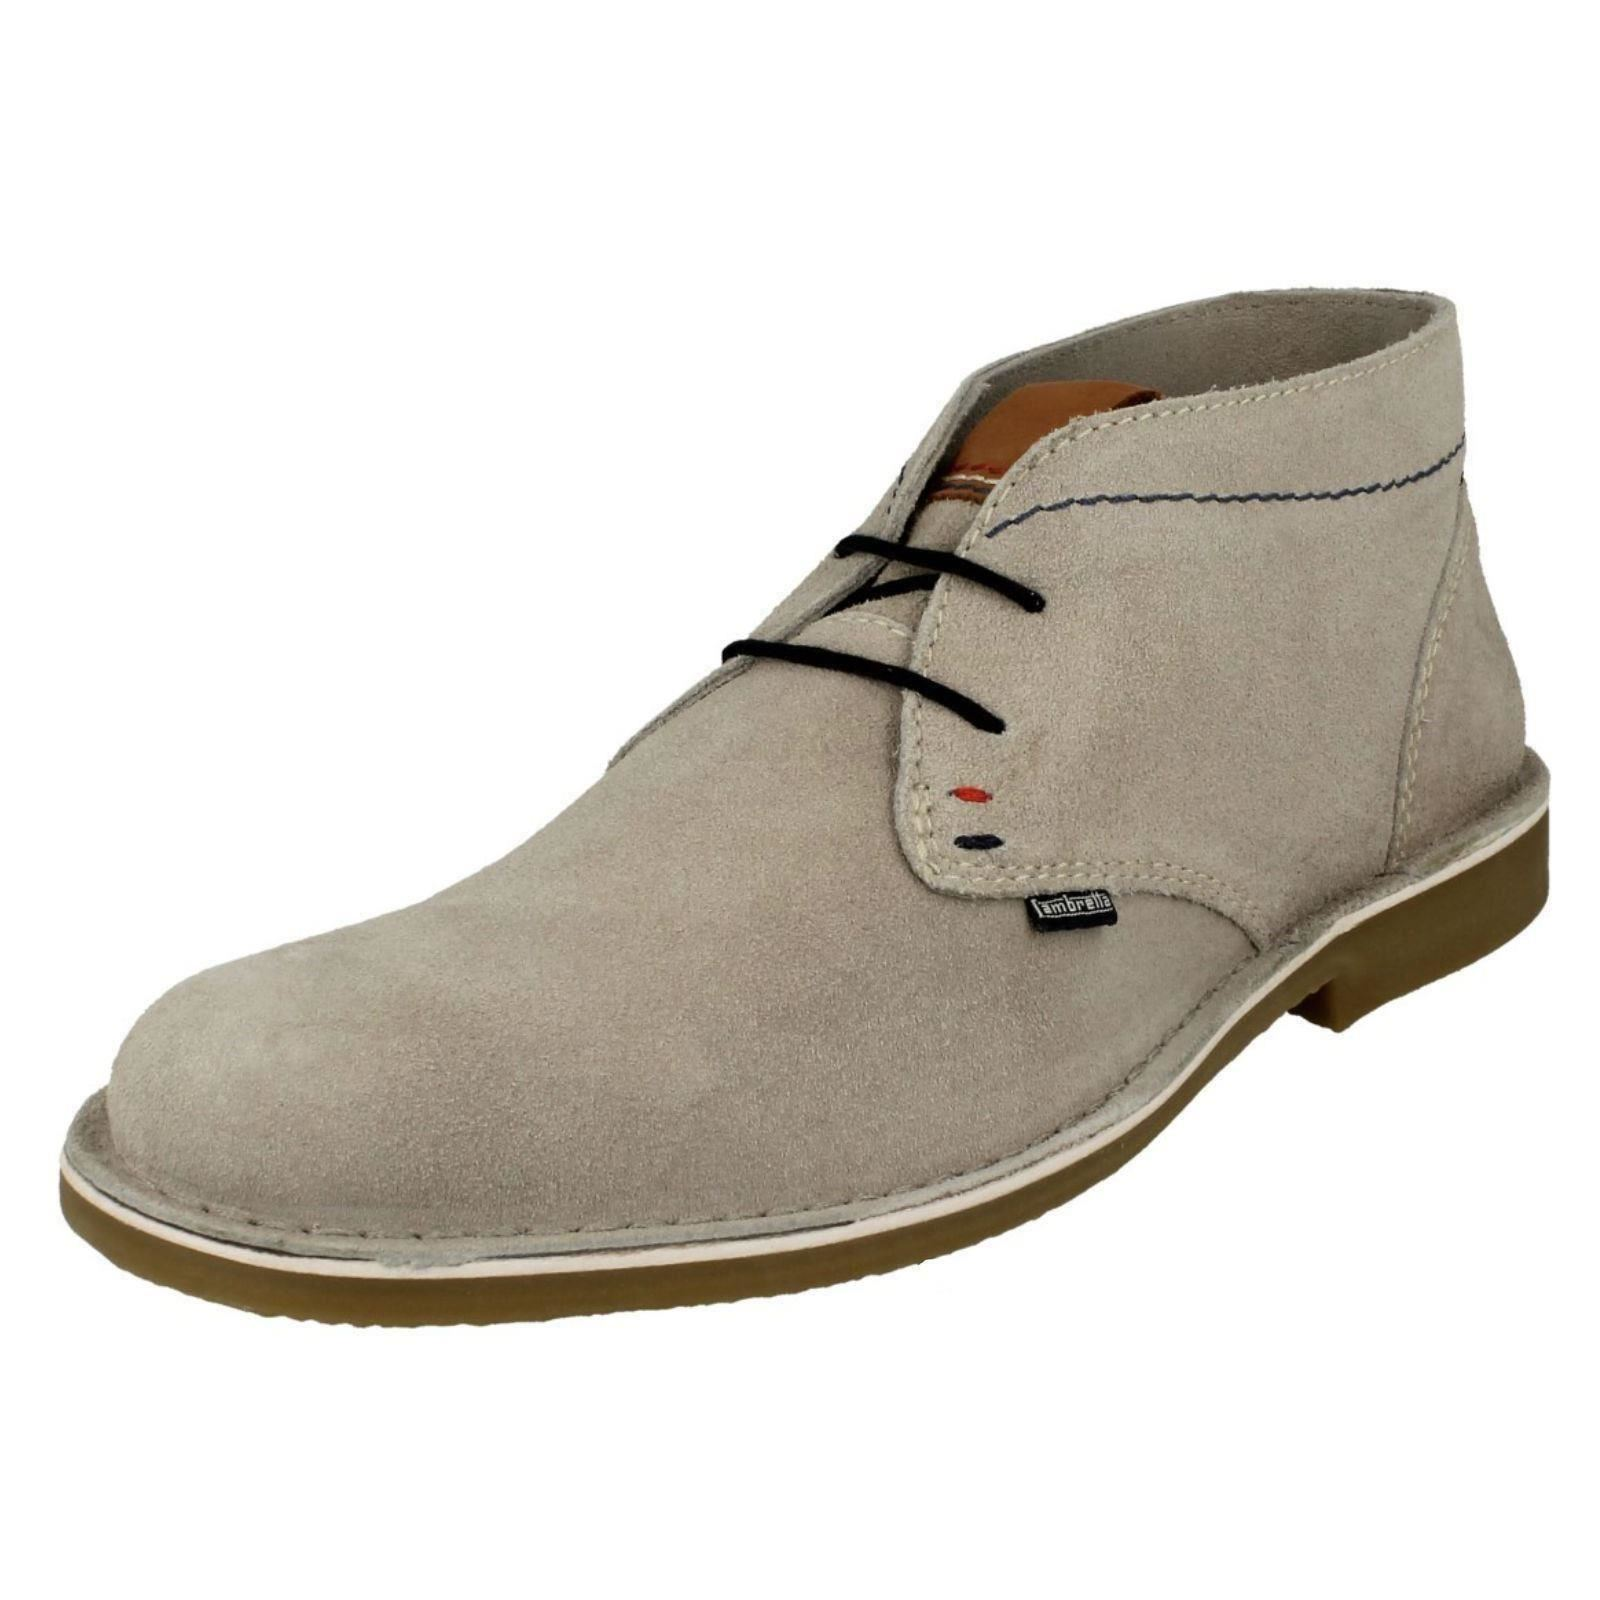 Herren Lambretta Casual Desert Boot Light Beige Brighton UK  6   UK   ffd485